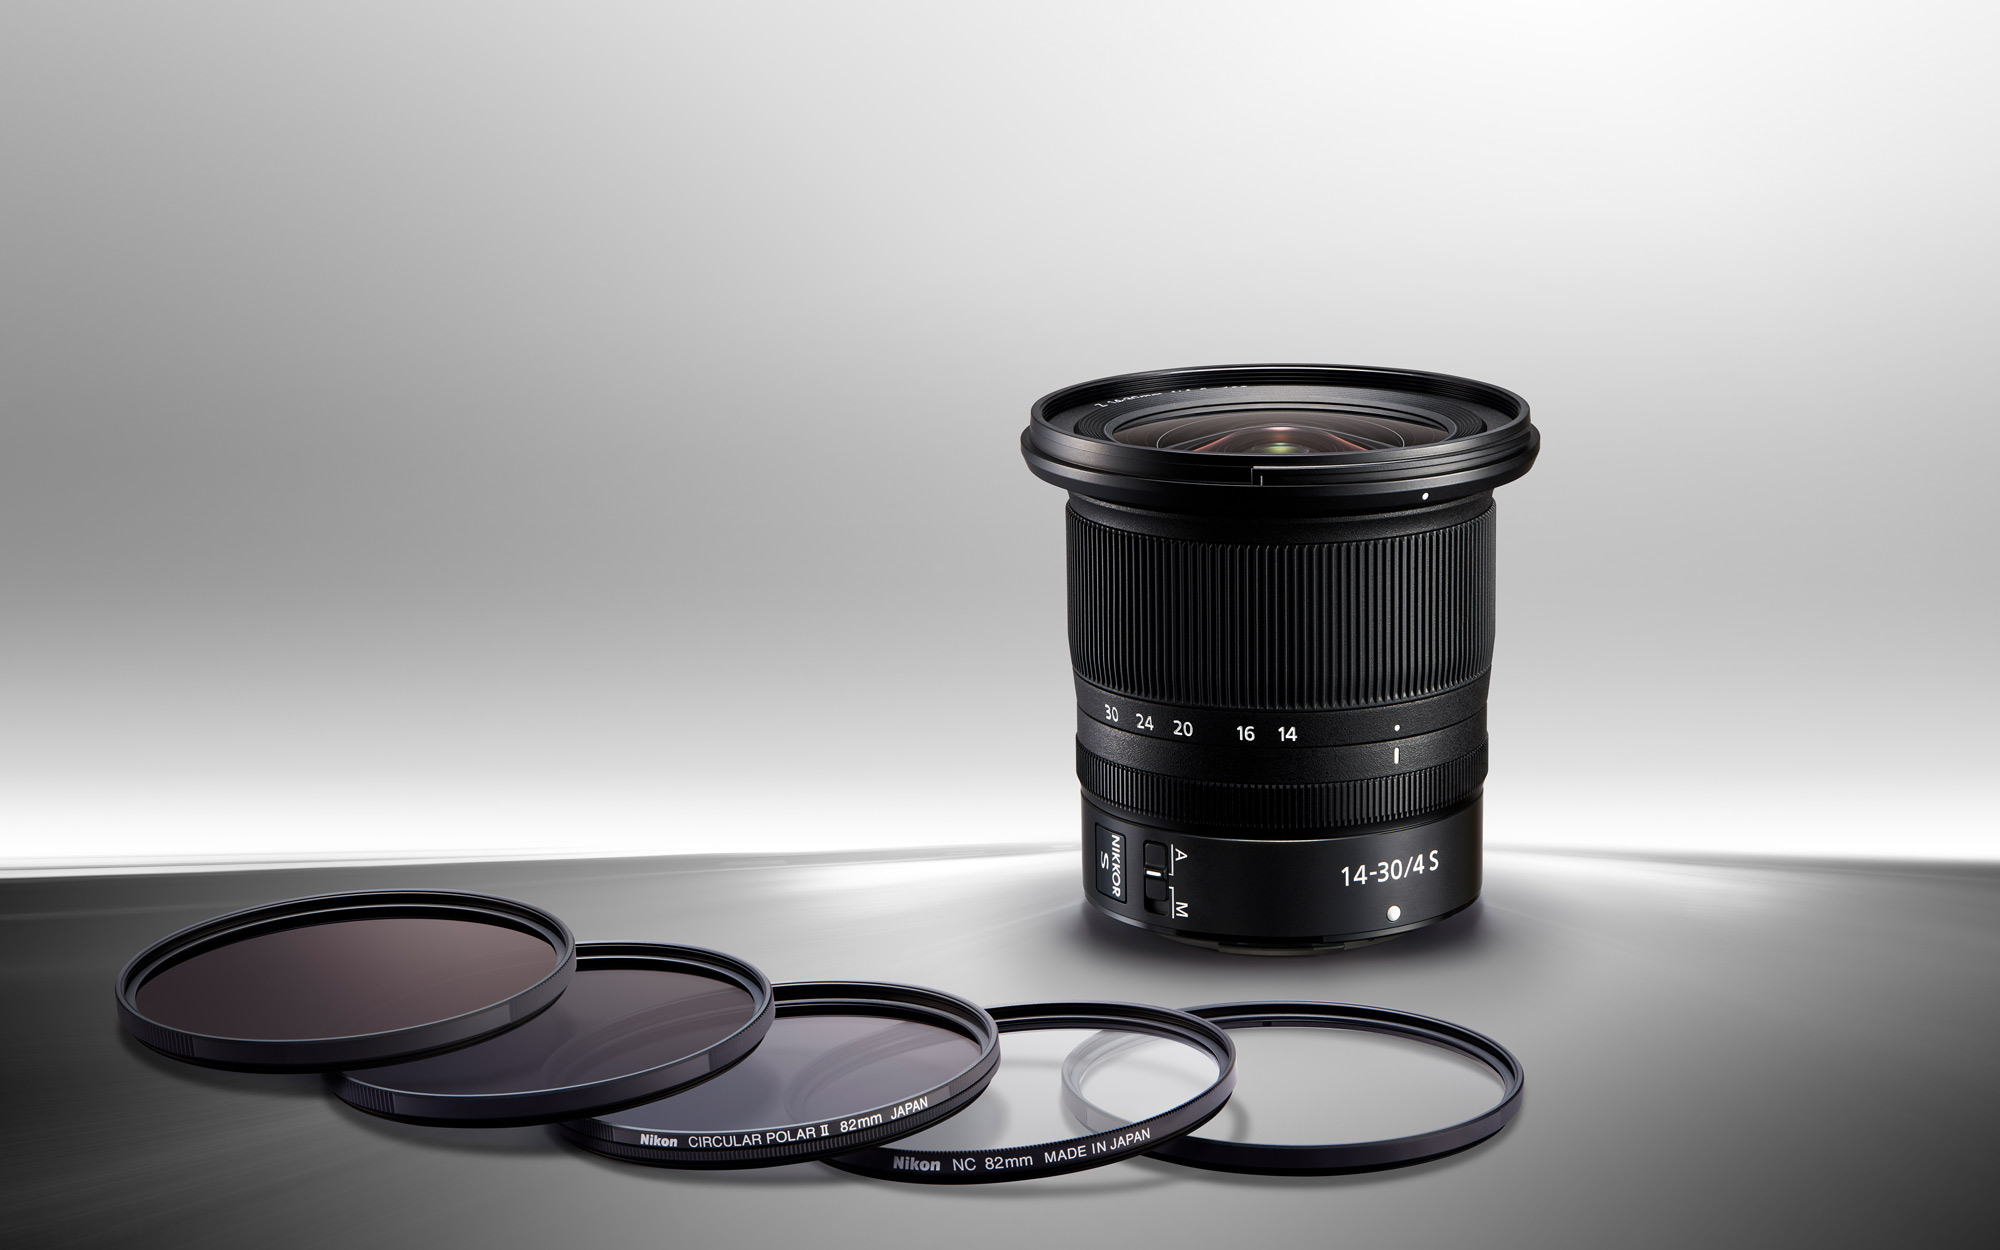 photo of the NIKKOR Z 14-30mm f/4 S and filters